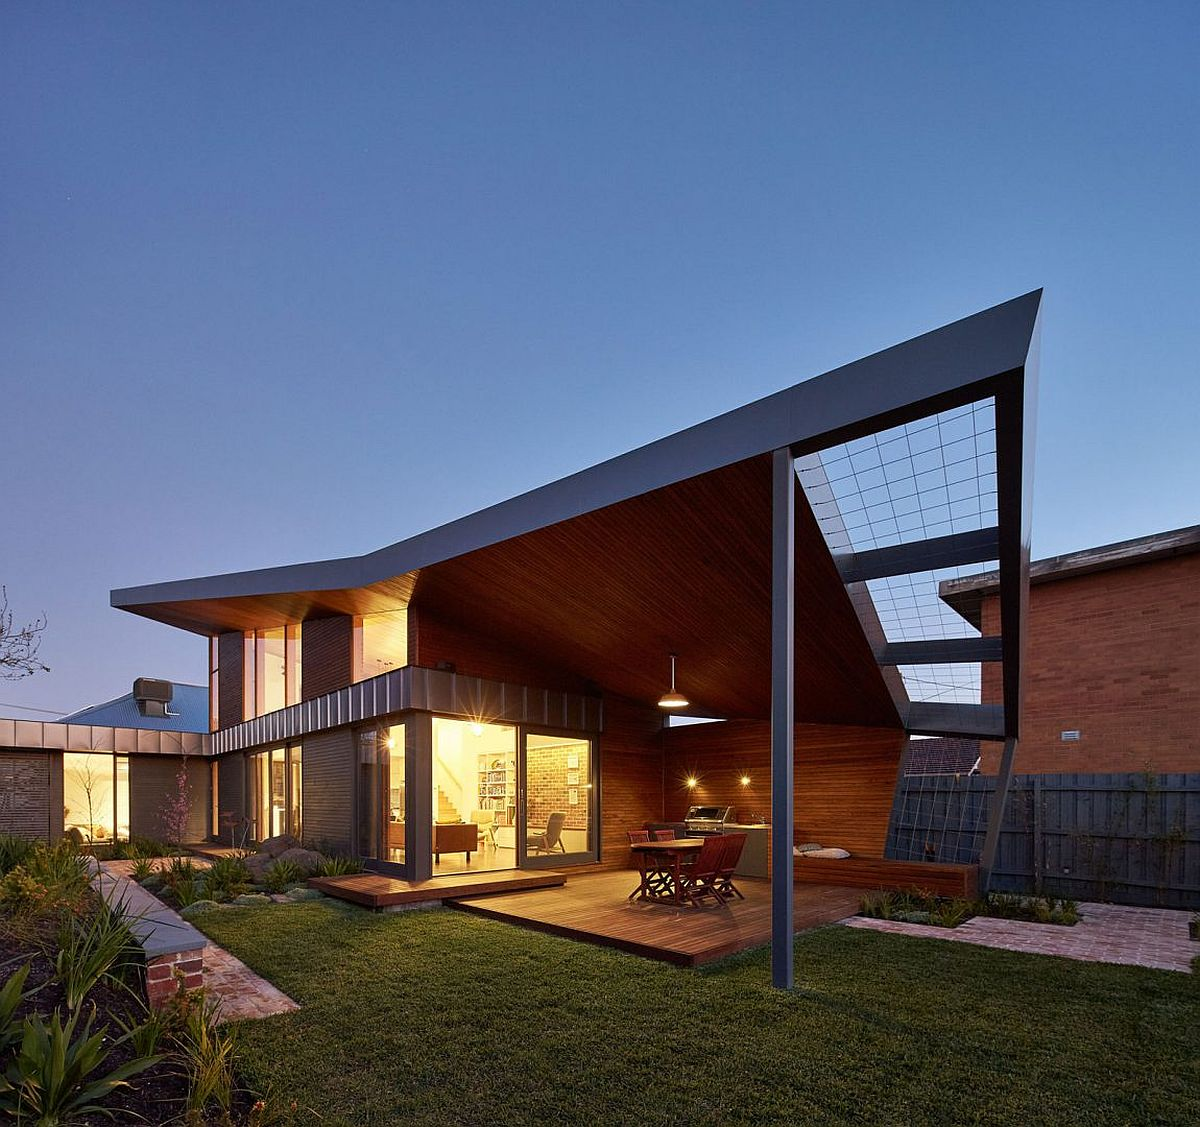 Structure of the home offers natural shade to the al fresco dining